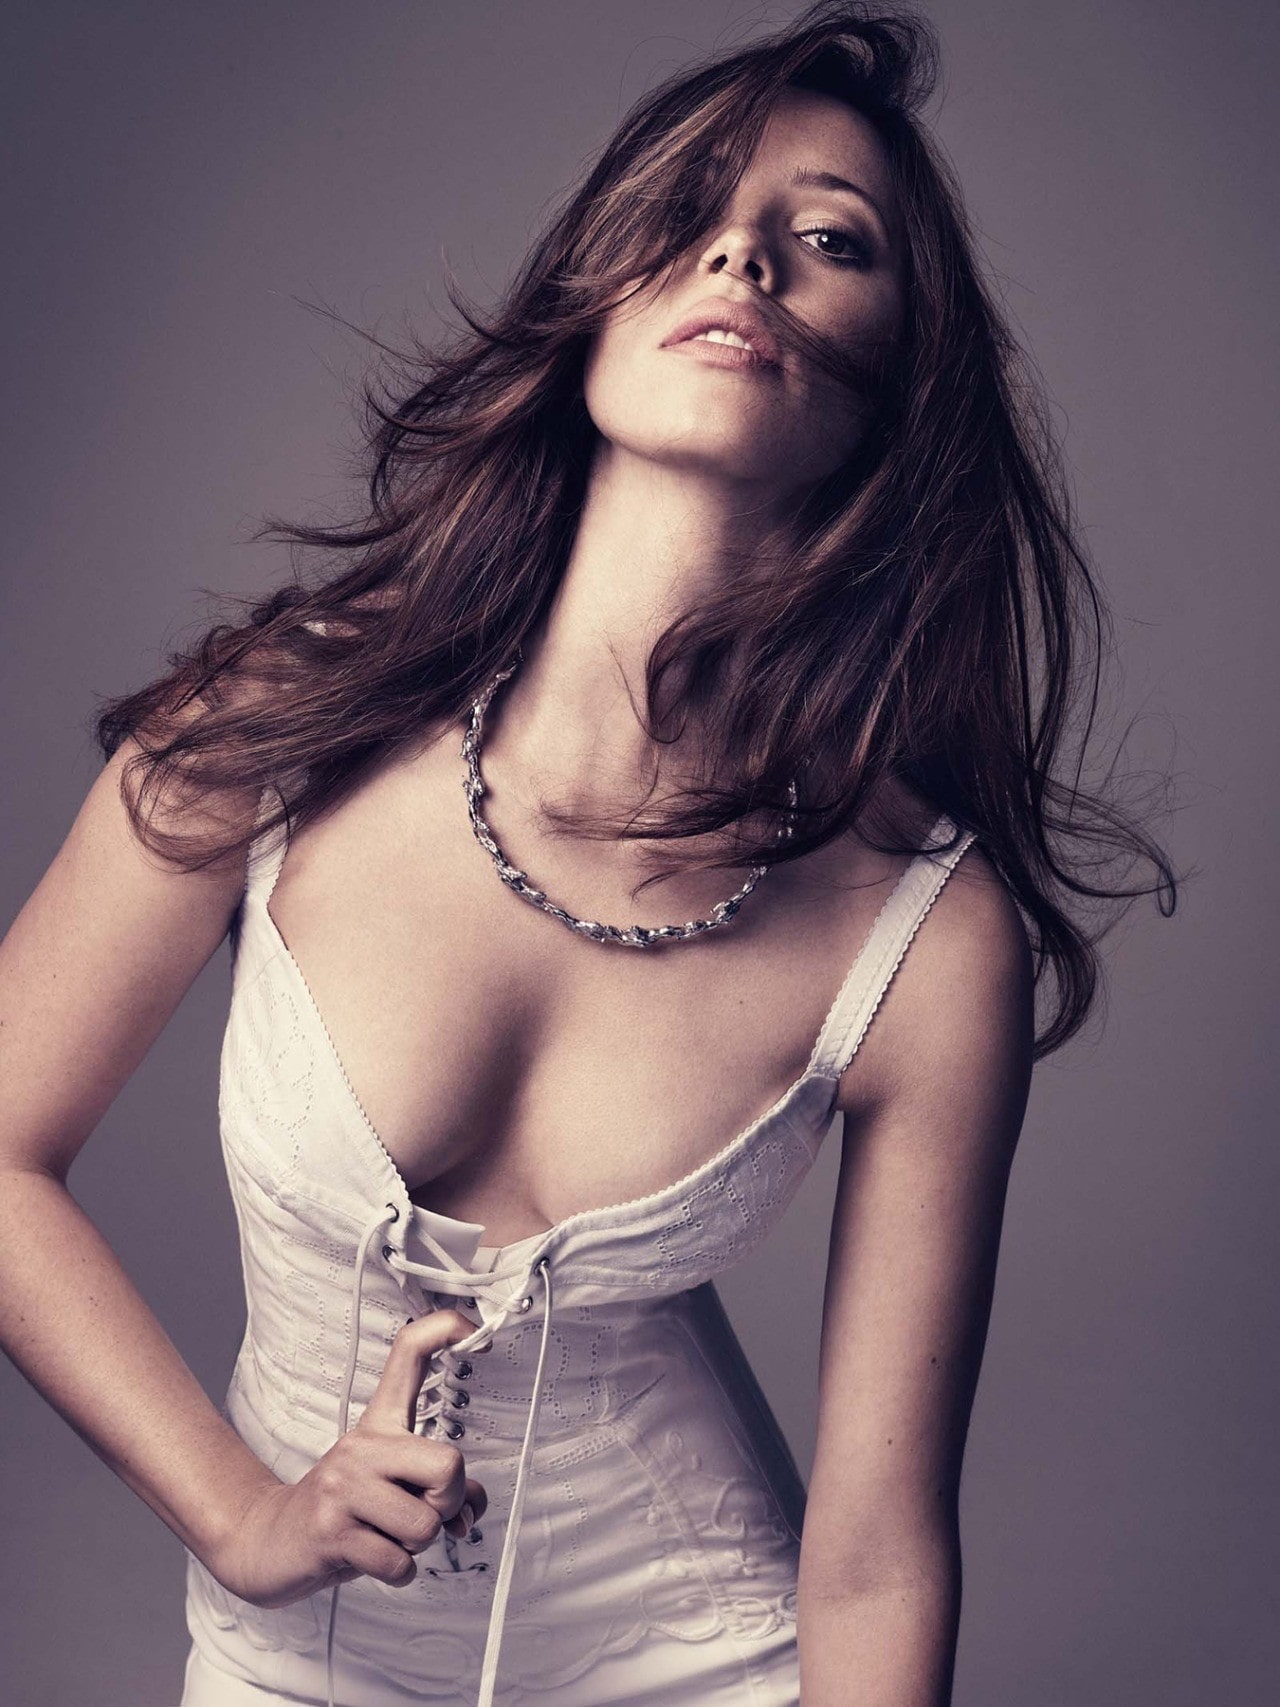 44 Hot Pictures Rebecca Hall Are Going Melt You With Their